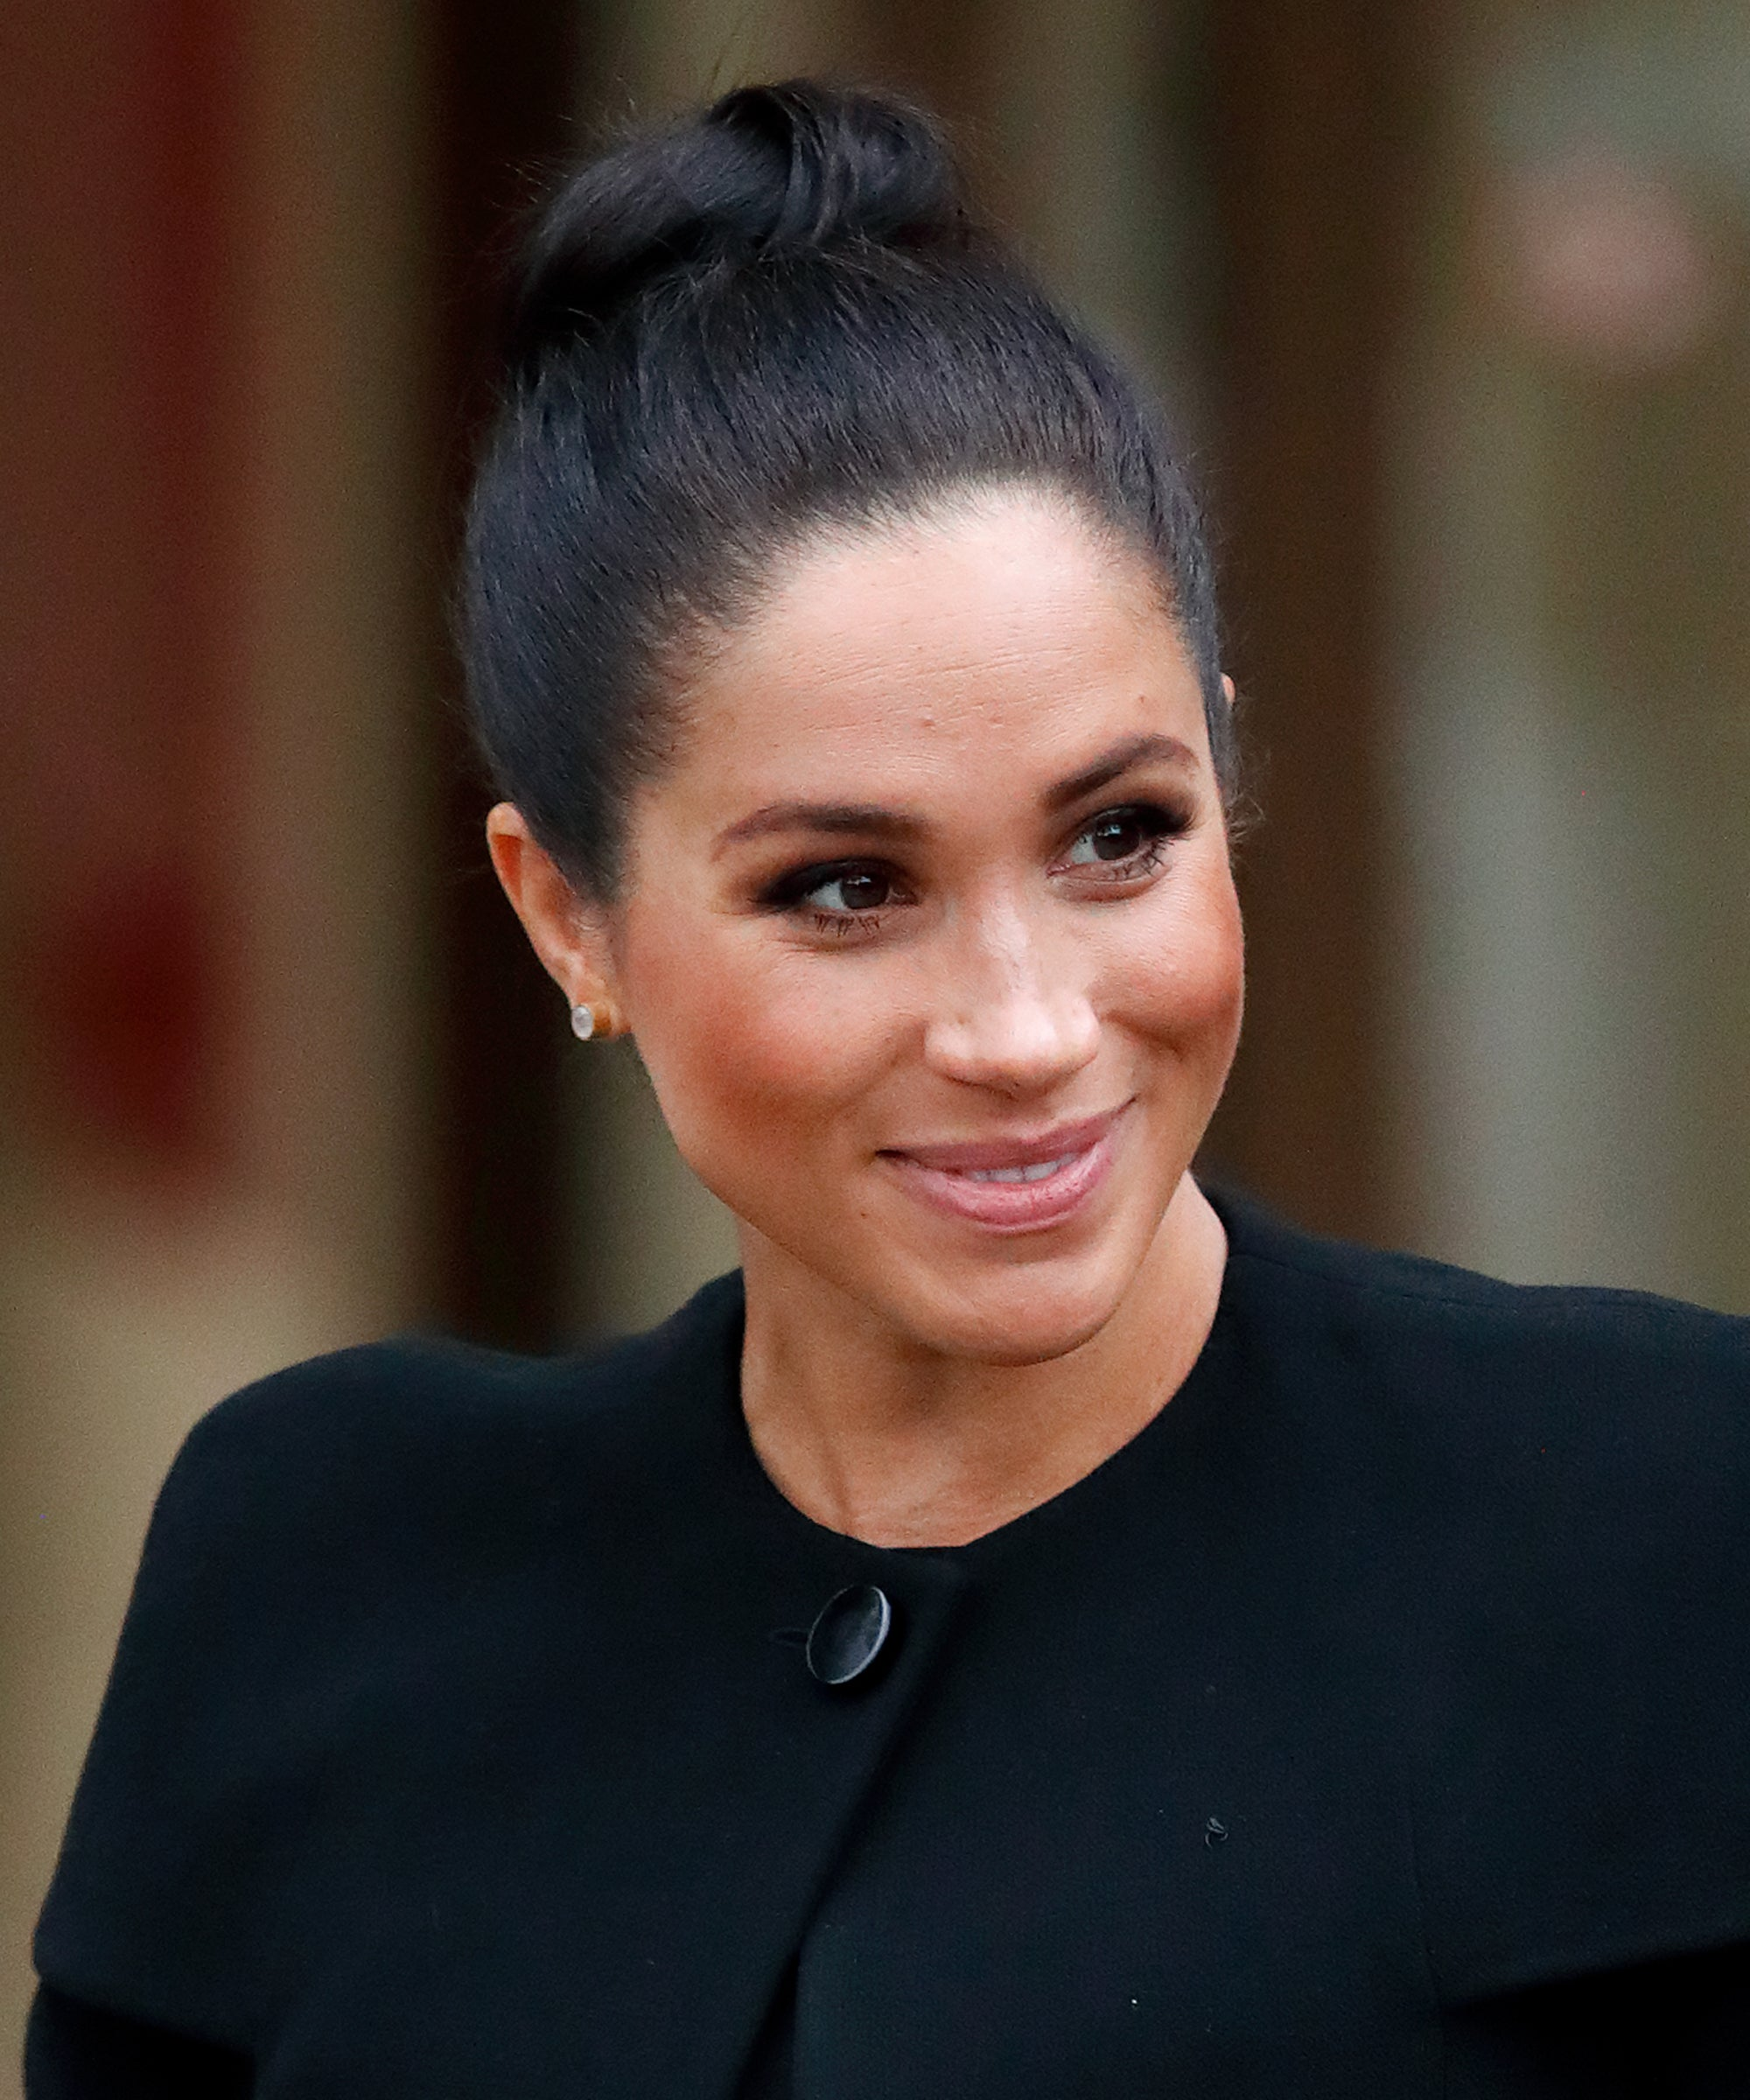 Meghan Markle Opens Up About The Importance Of Vulnerability In A Rare Interview